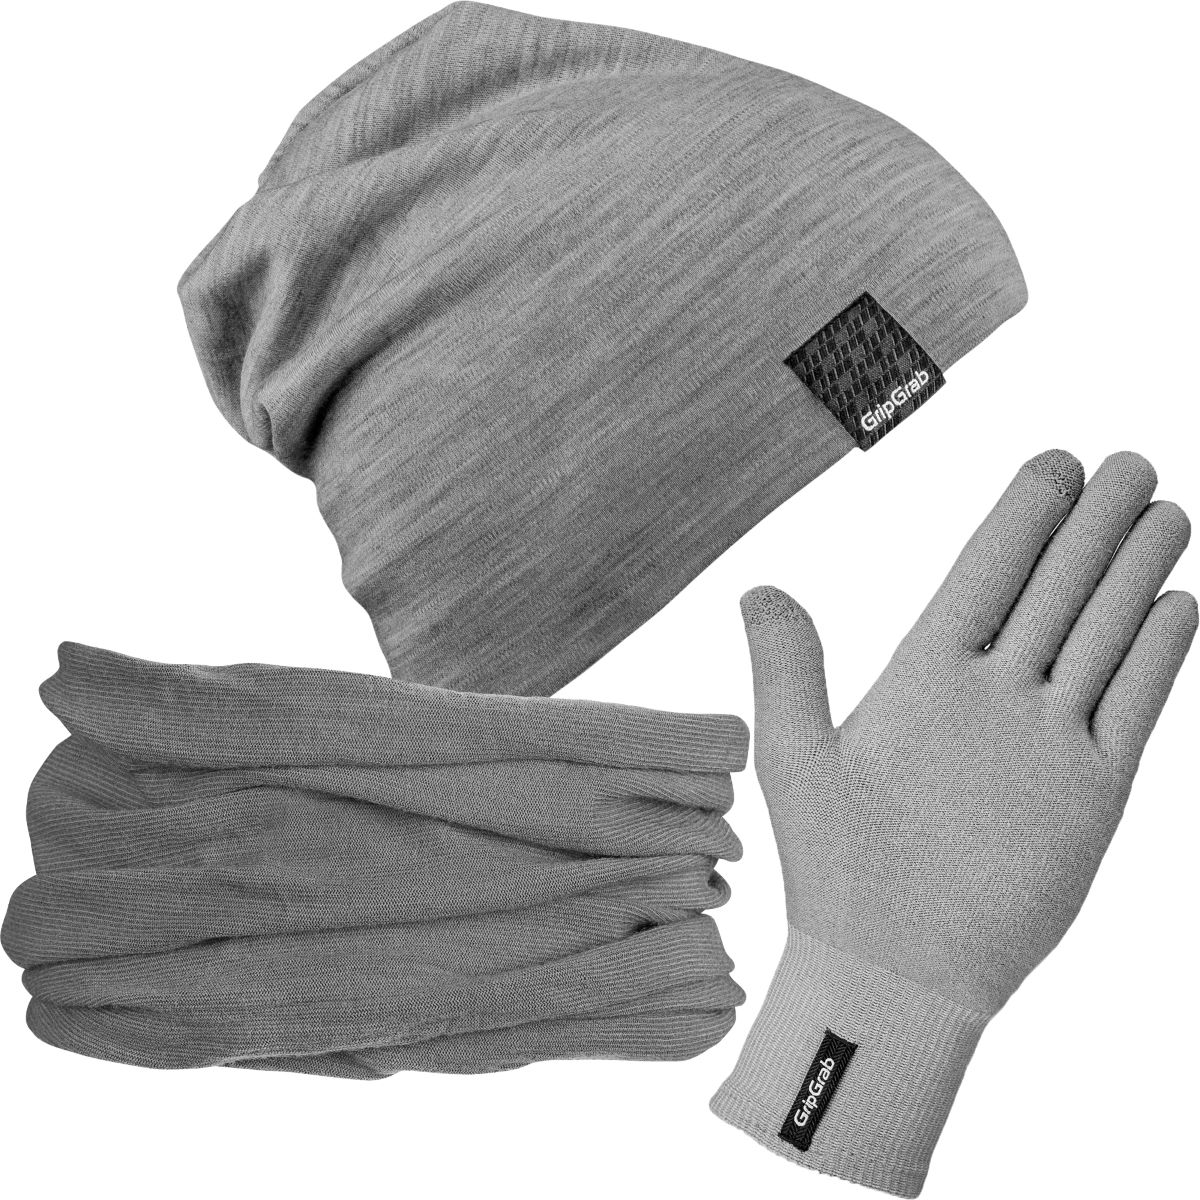 GripGrab GripGrab Merino Runners Accessories Pack   Gloves